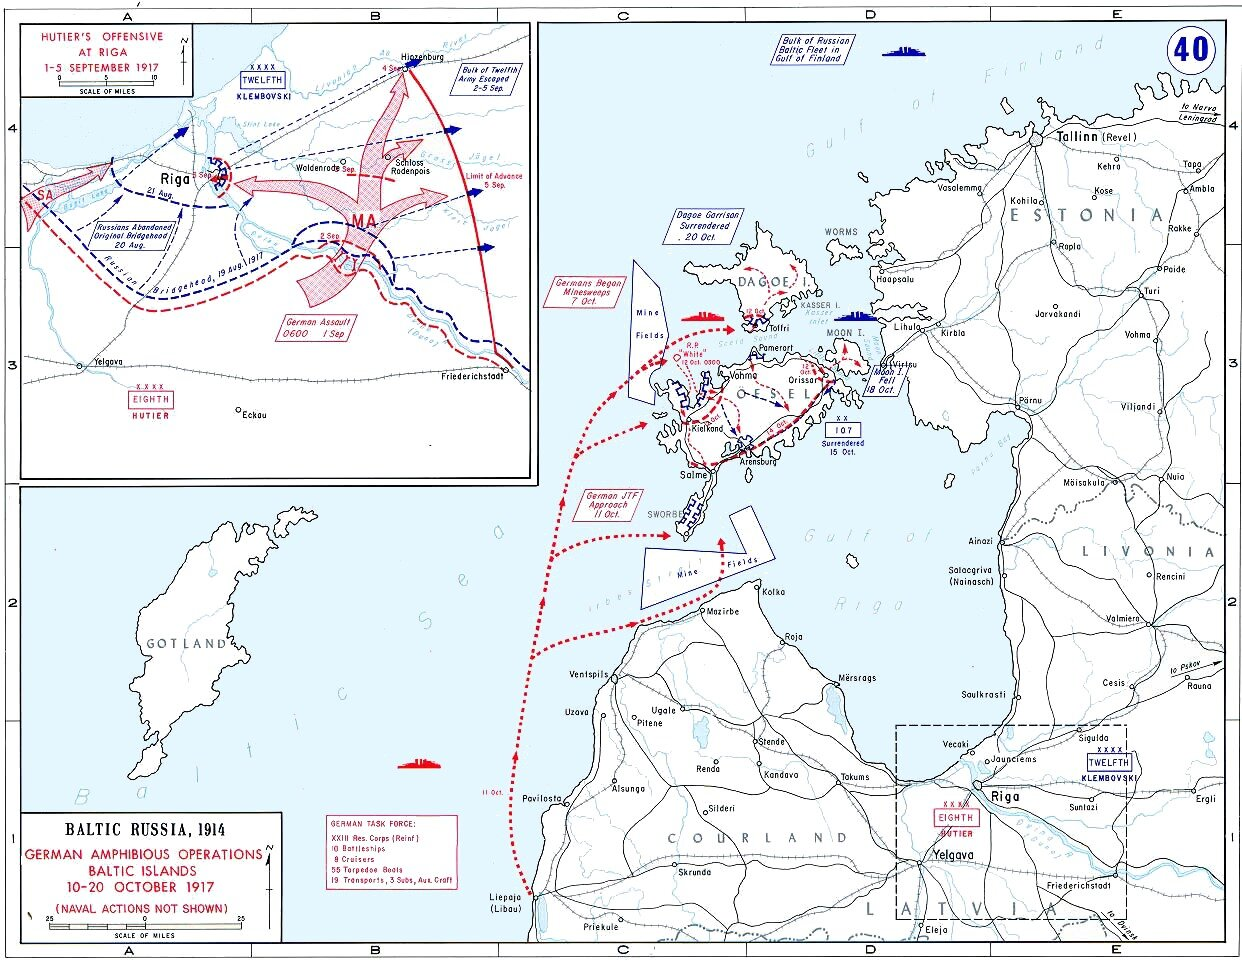 Operation Albion (click for greater detail).